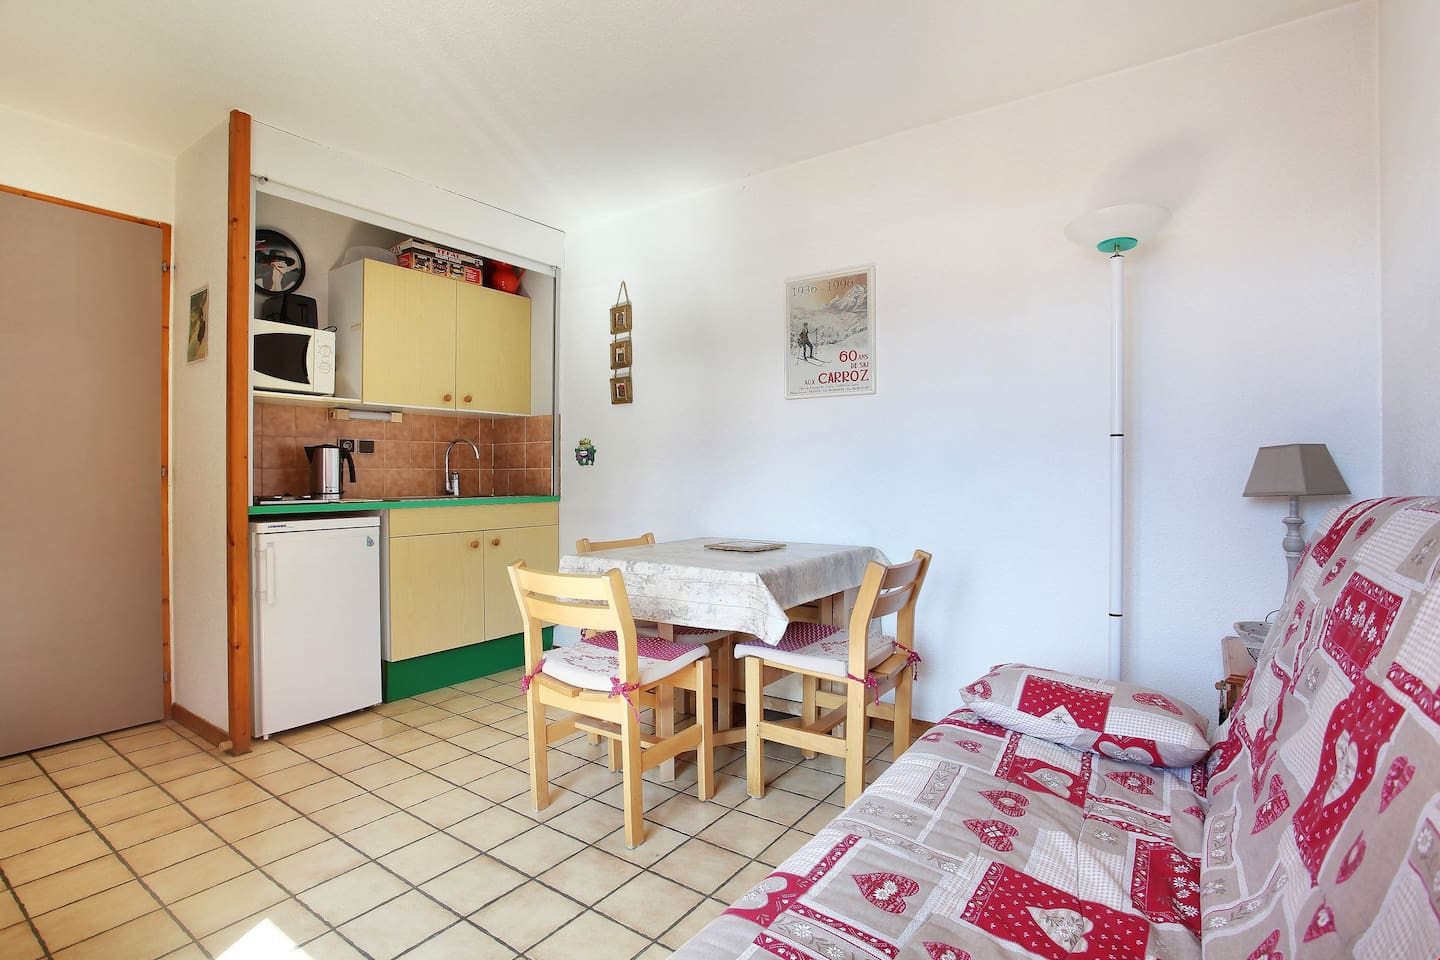 Welcome to your cozy and charming apartment by the pistes!